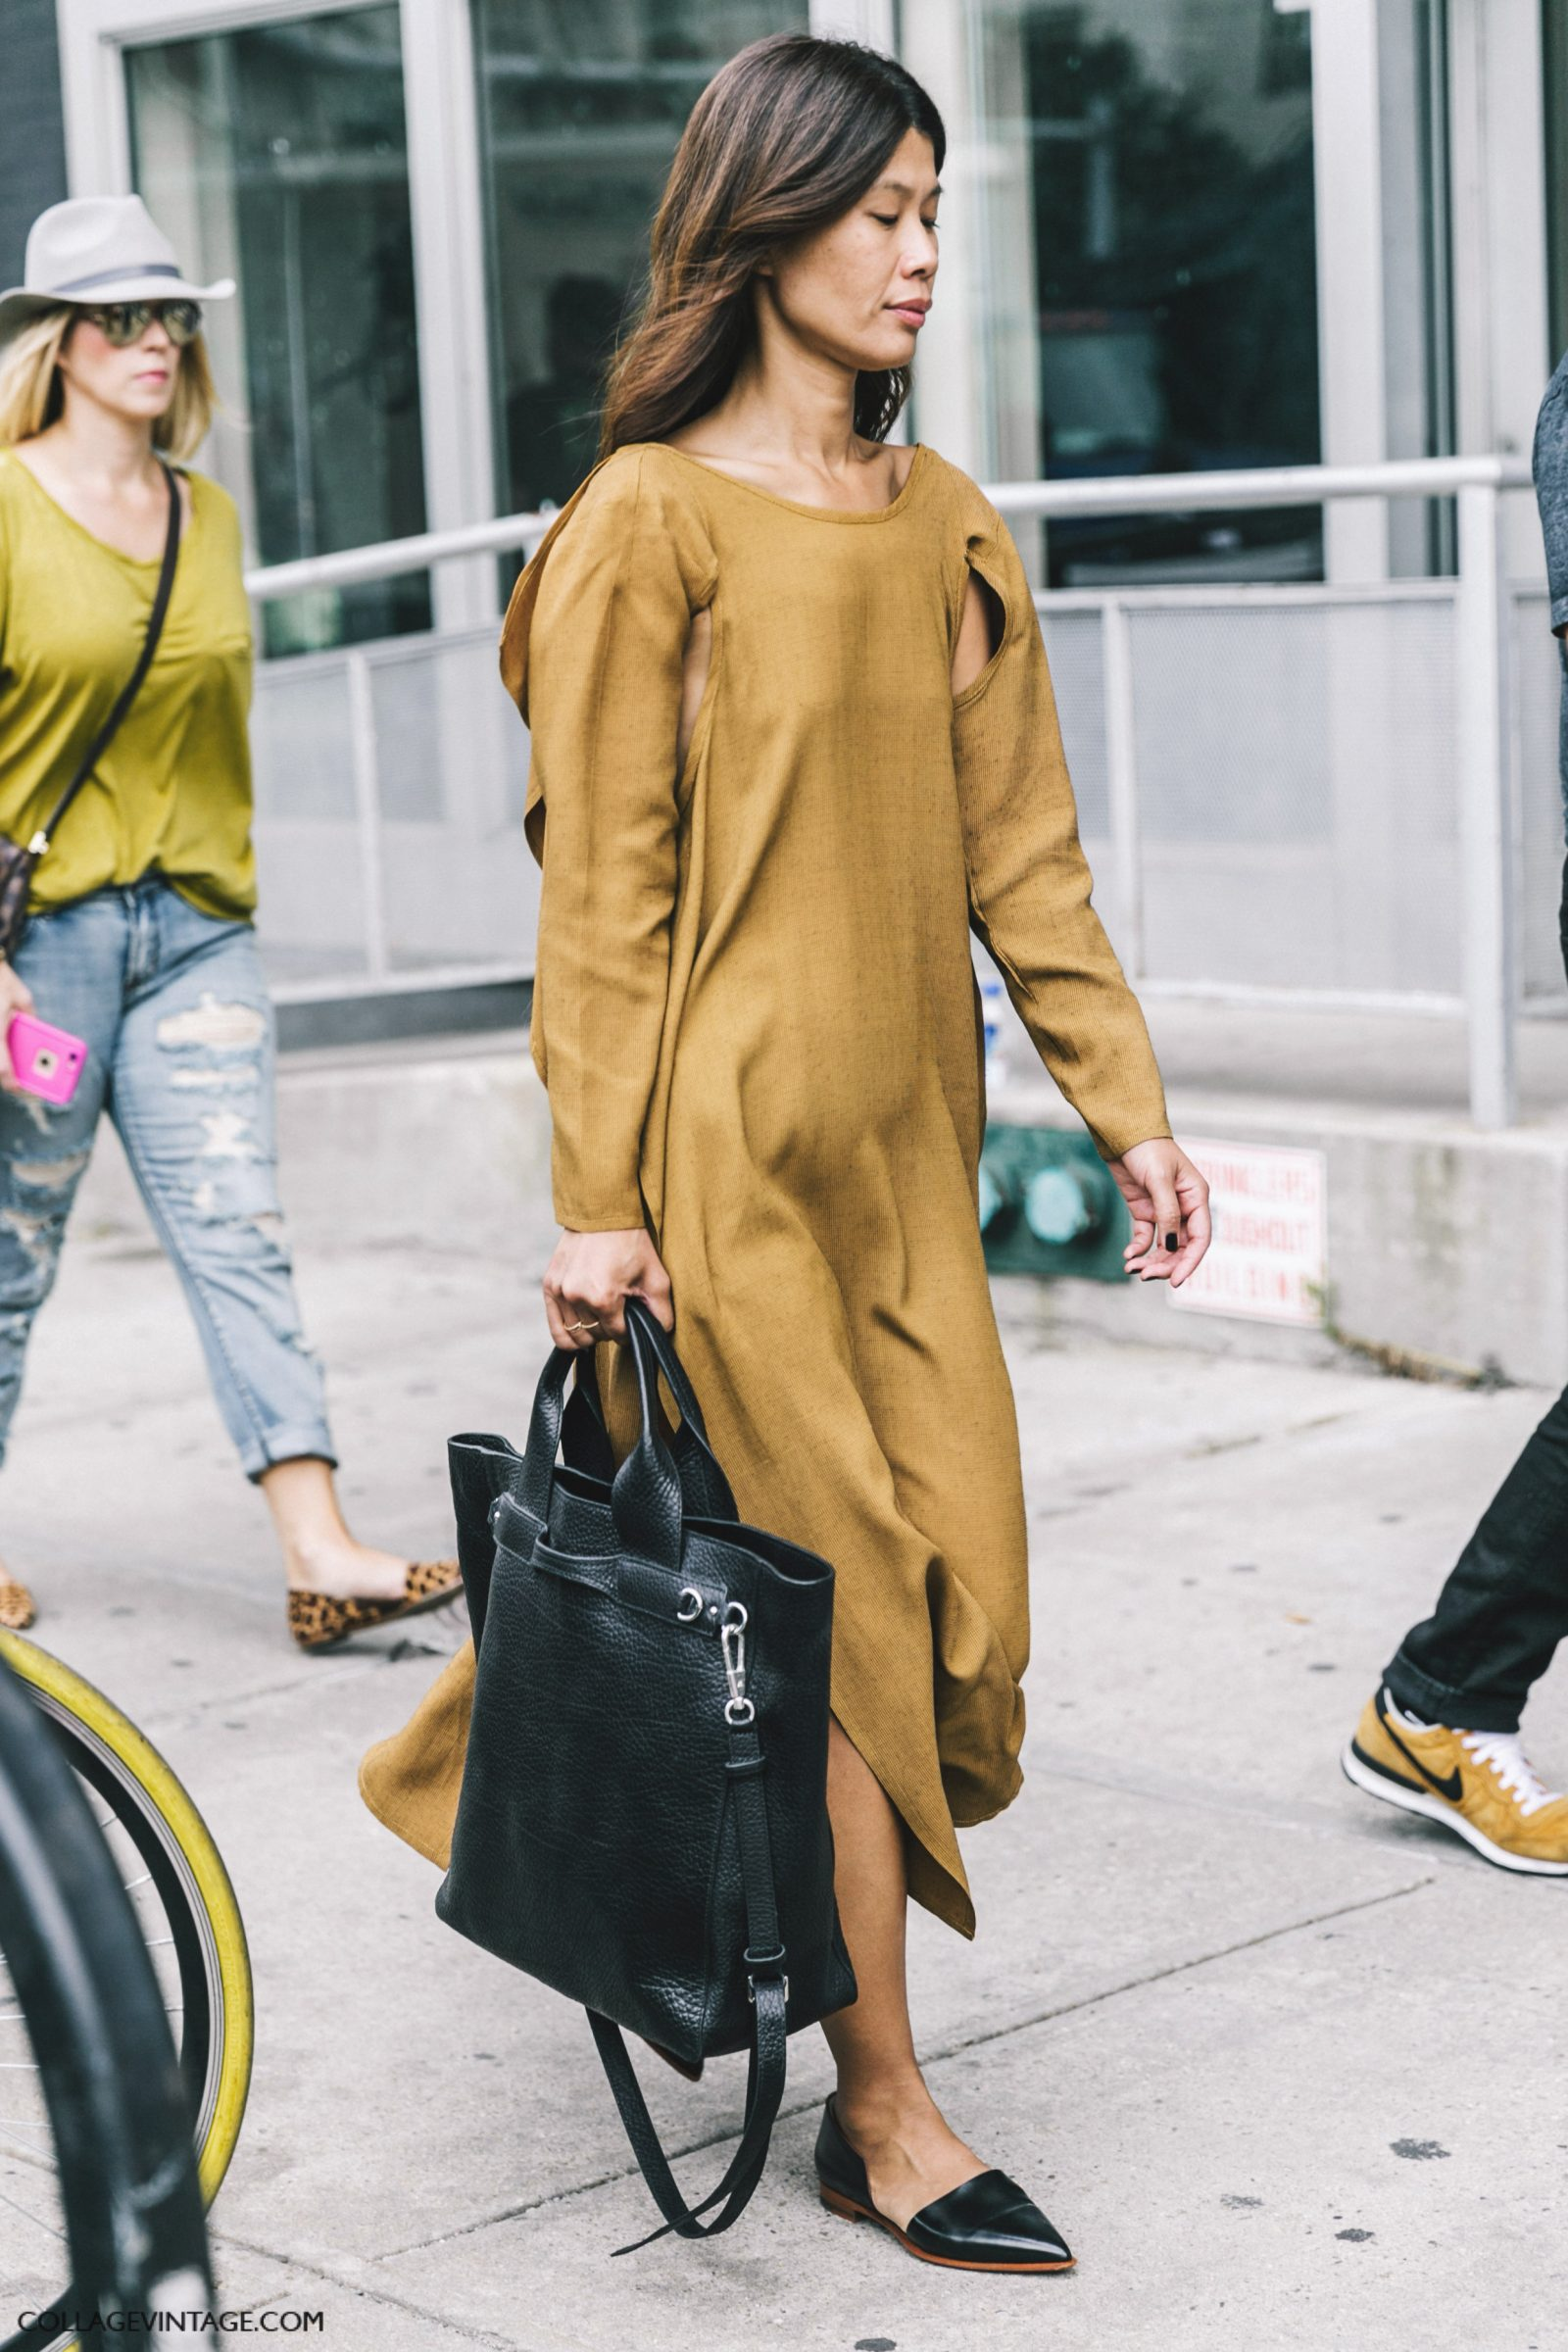 nyfw-new_york_fashion_week_ss17-street_style-outfits-collage_vintage-mustard_dress-shopper_bag-1